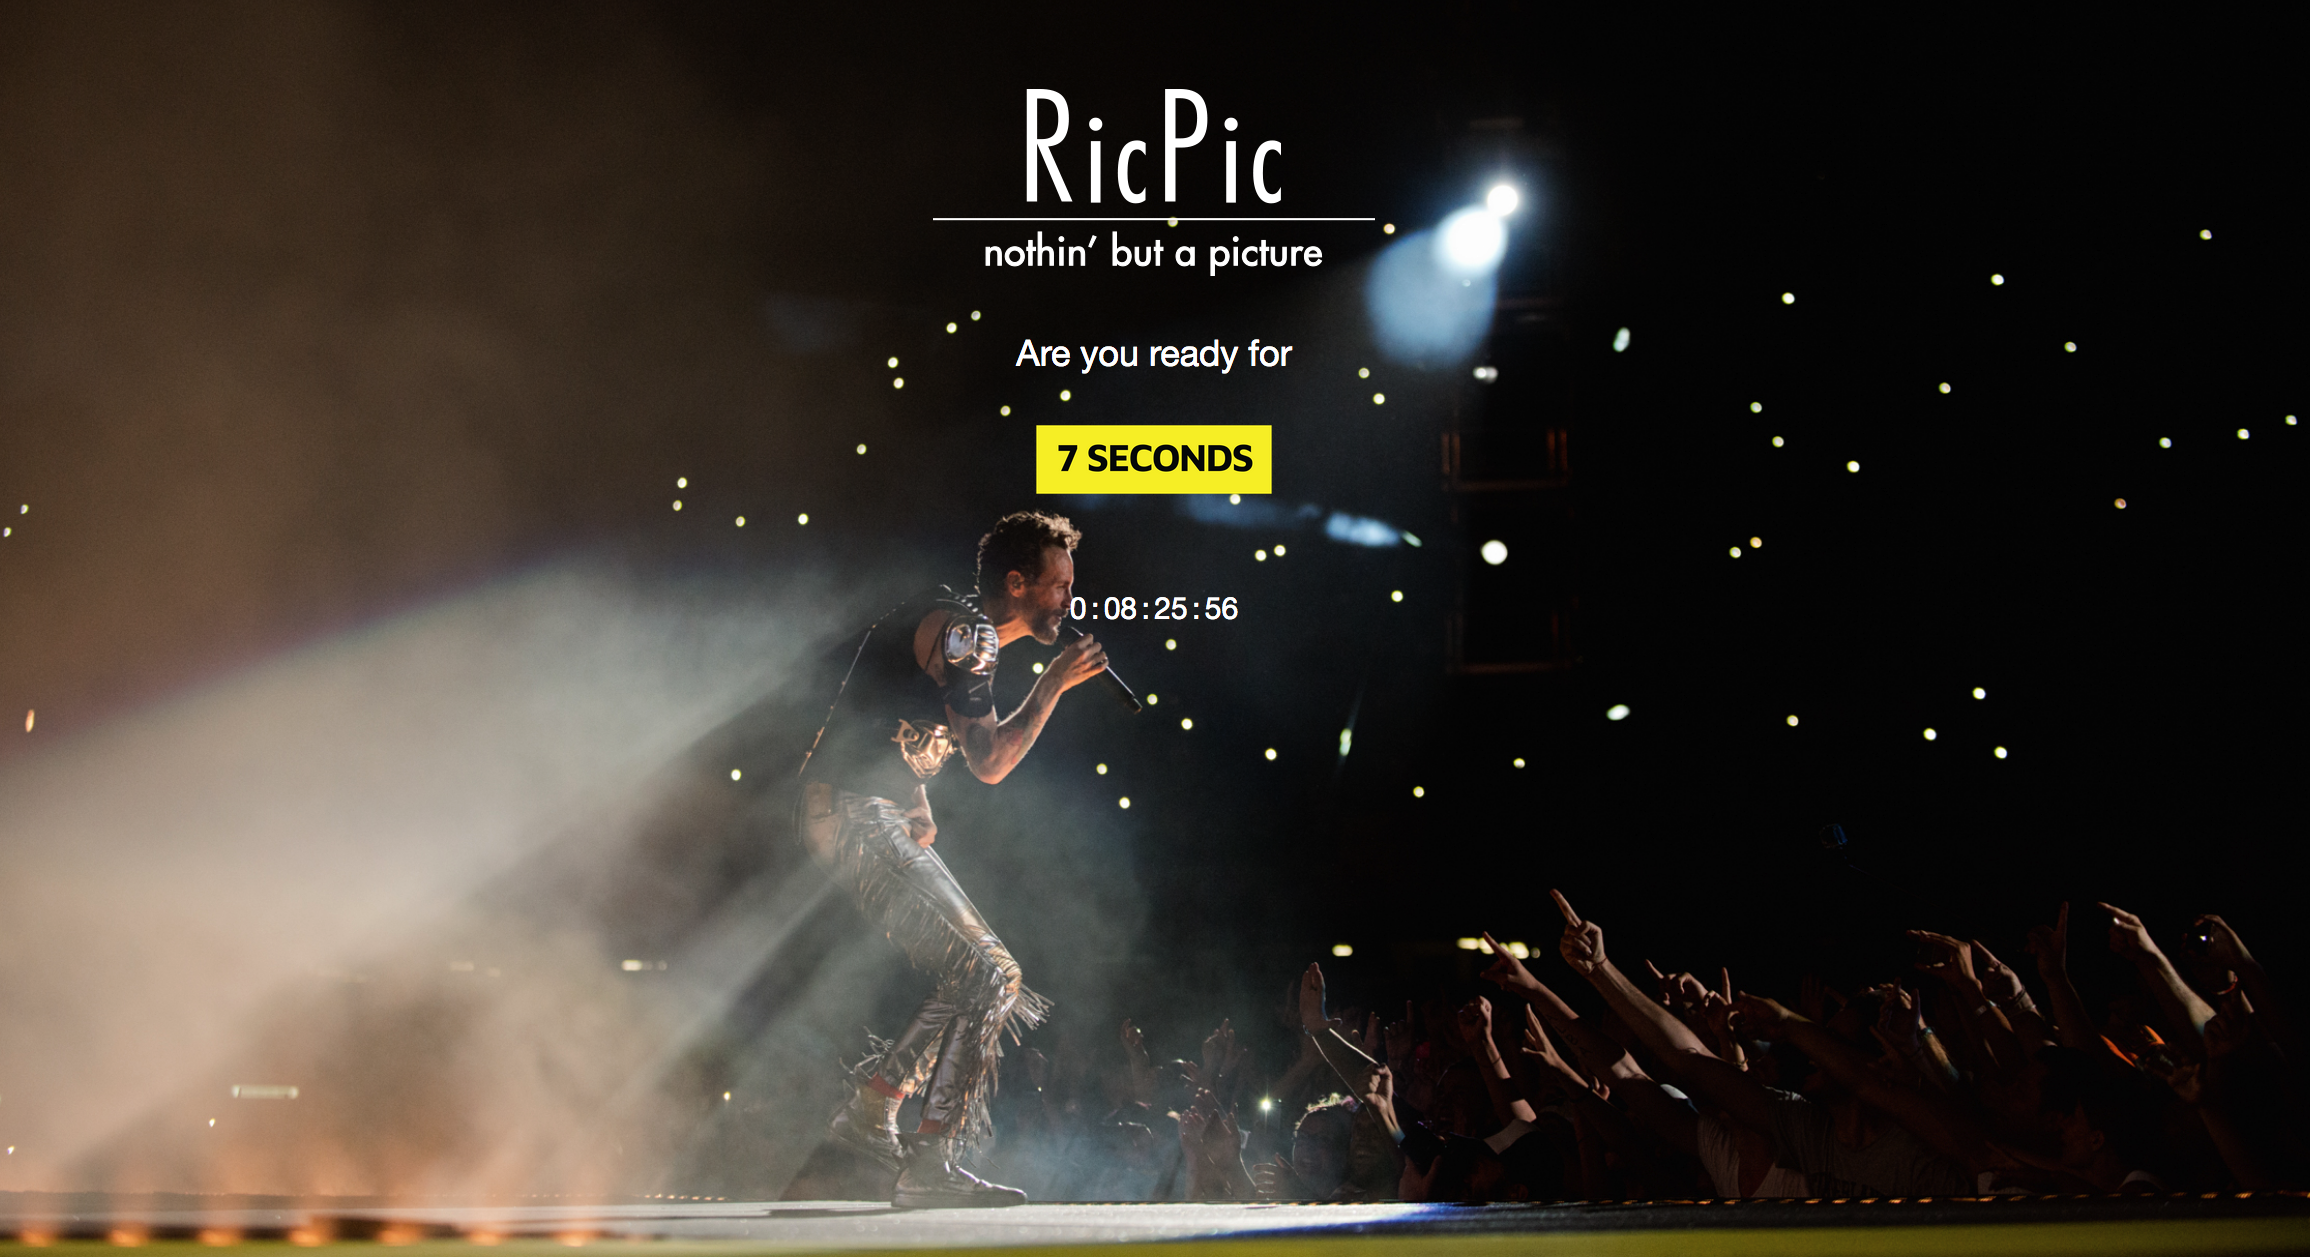 """WWW.7SECONDS.IT"", L'OPERA WEB DEL FOTOGRAFO RICPIC PER I 10 ANNI DI CARRIERA"